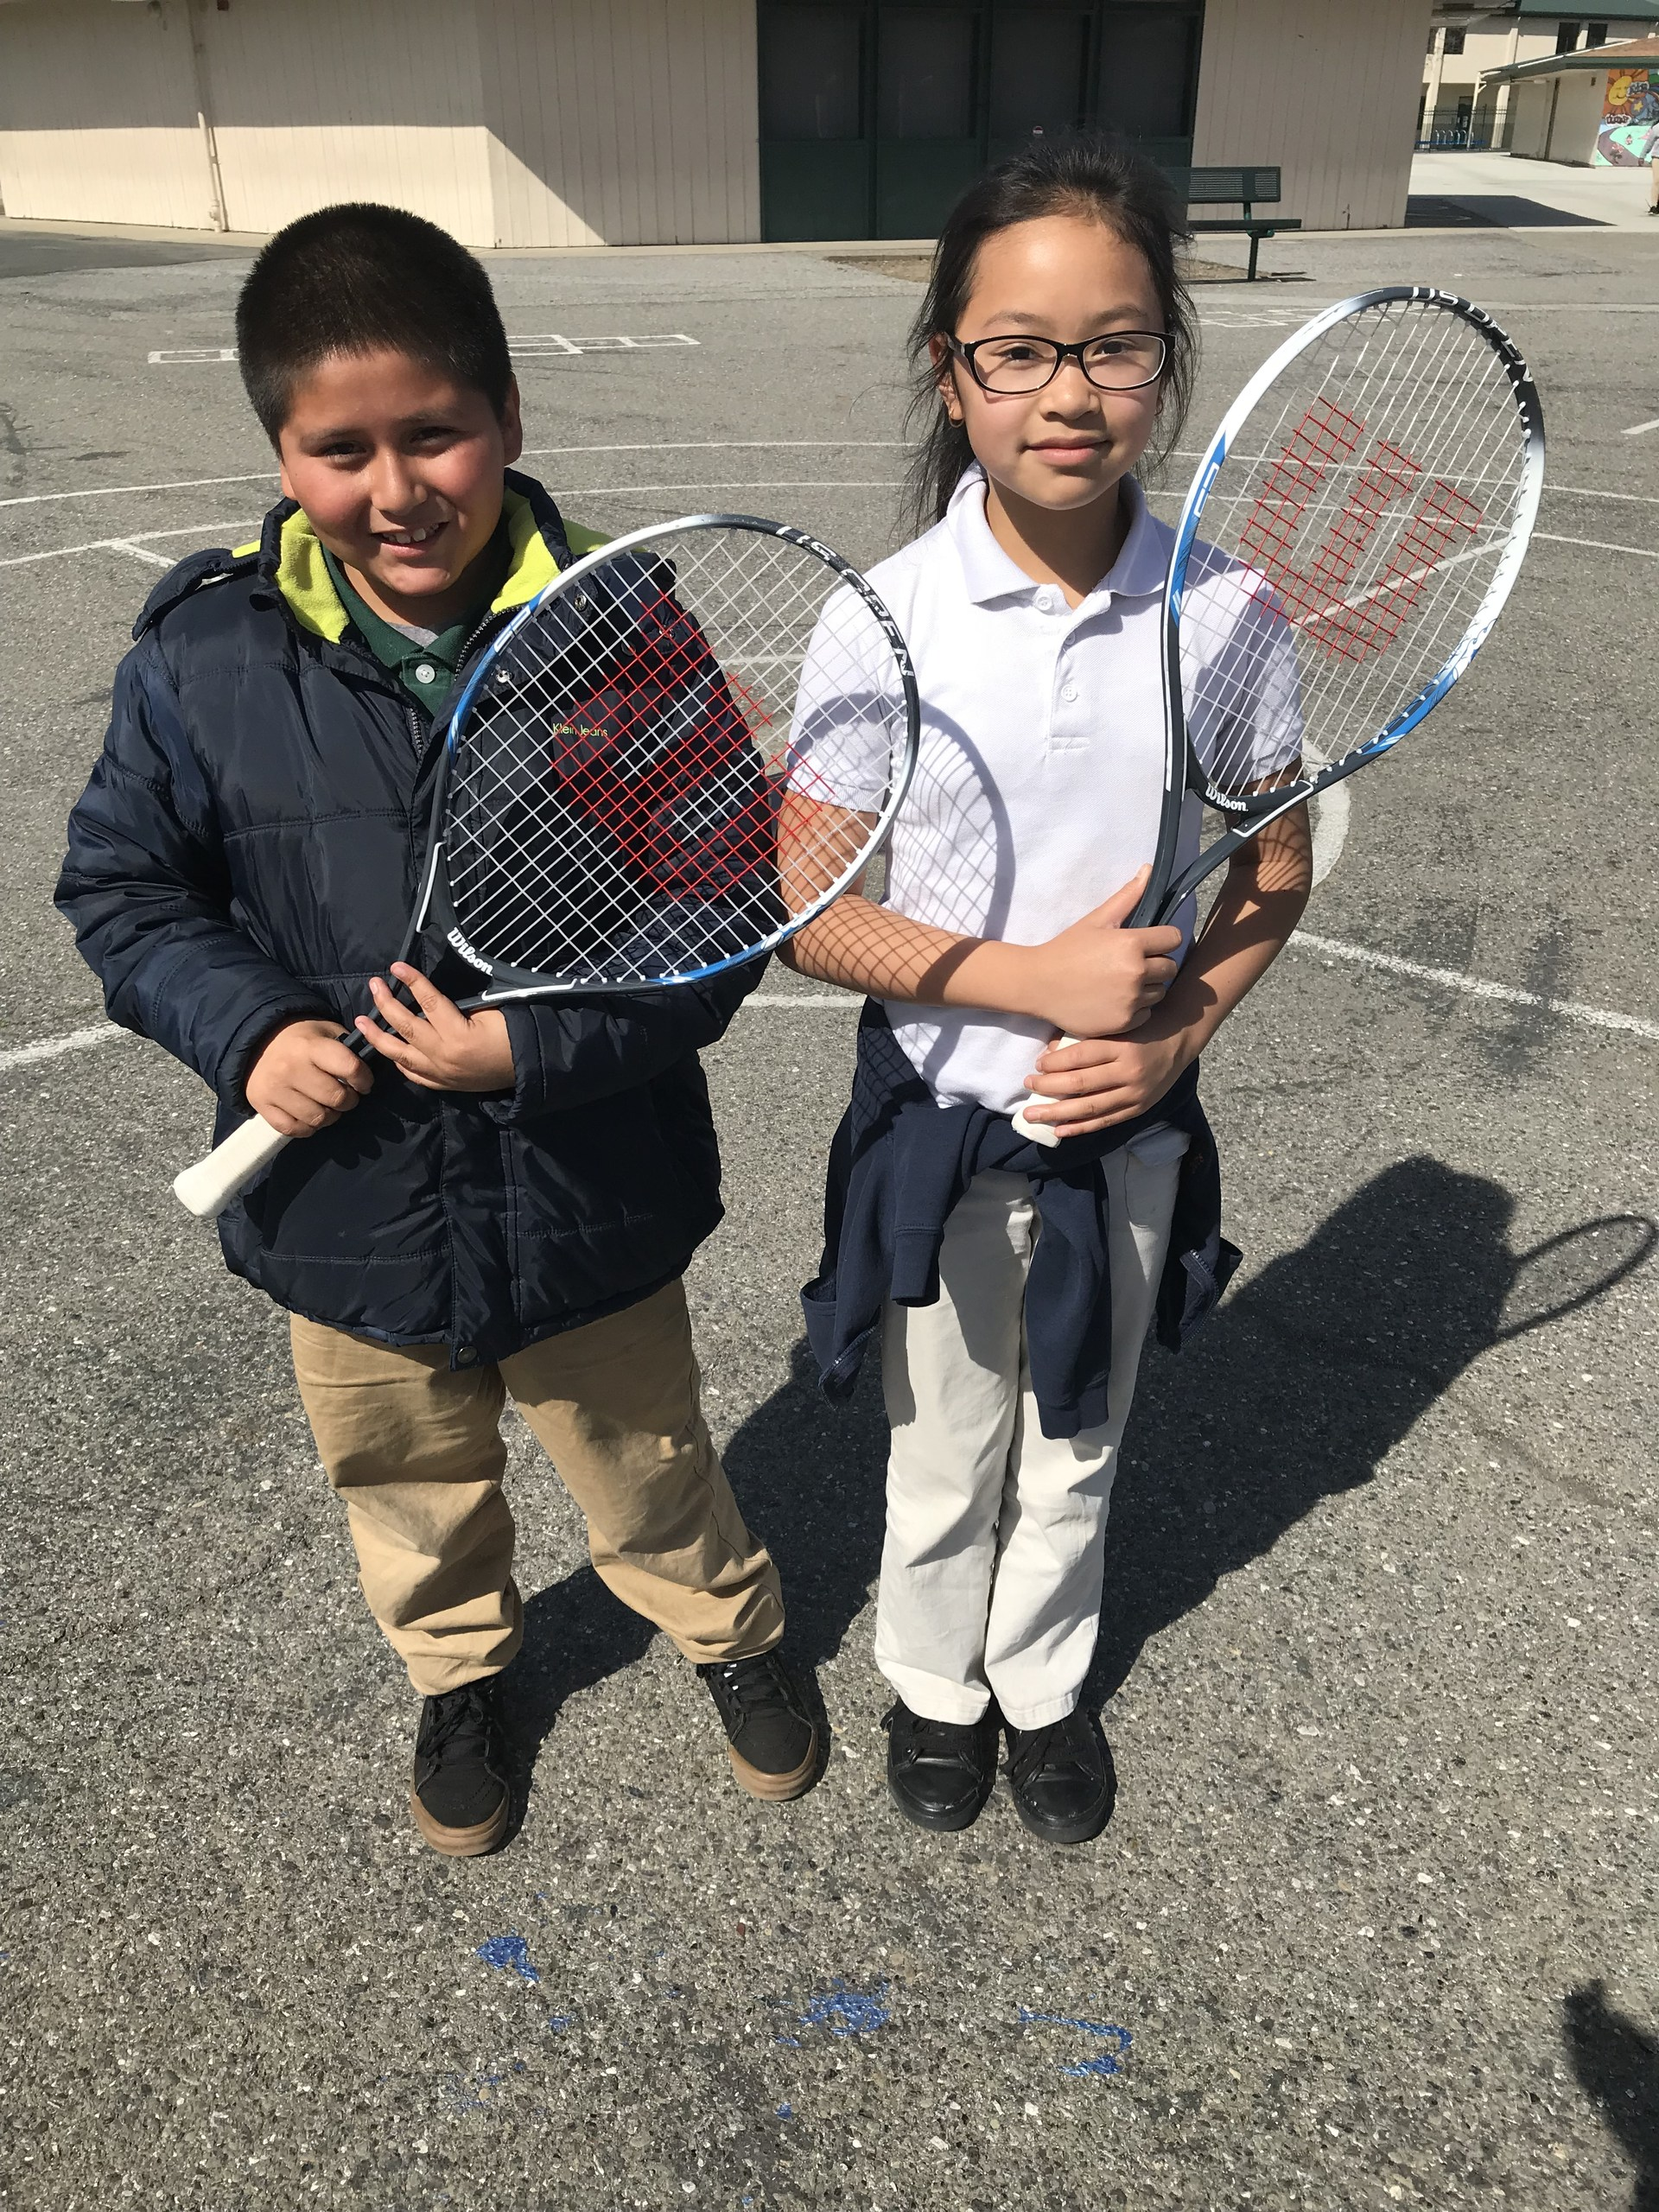 students with tennis rackets